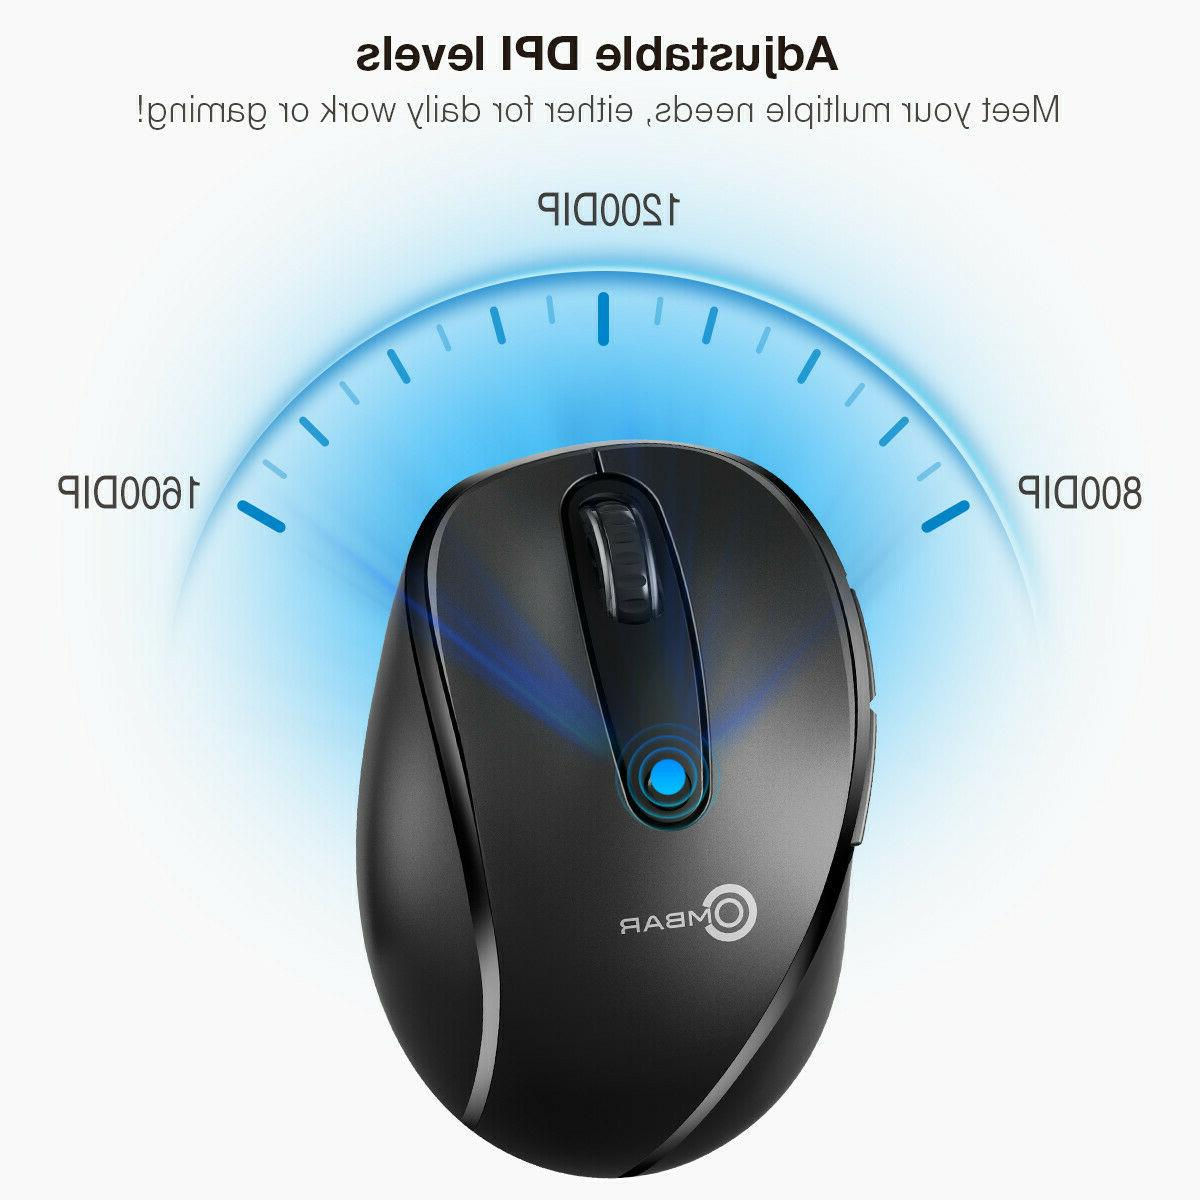 2.4GHZ 6 Buttons Wireless Mouse Optical Mice for PC Mac OS Tablets